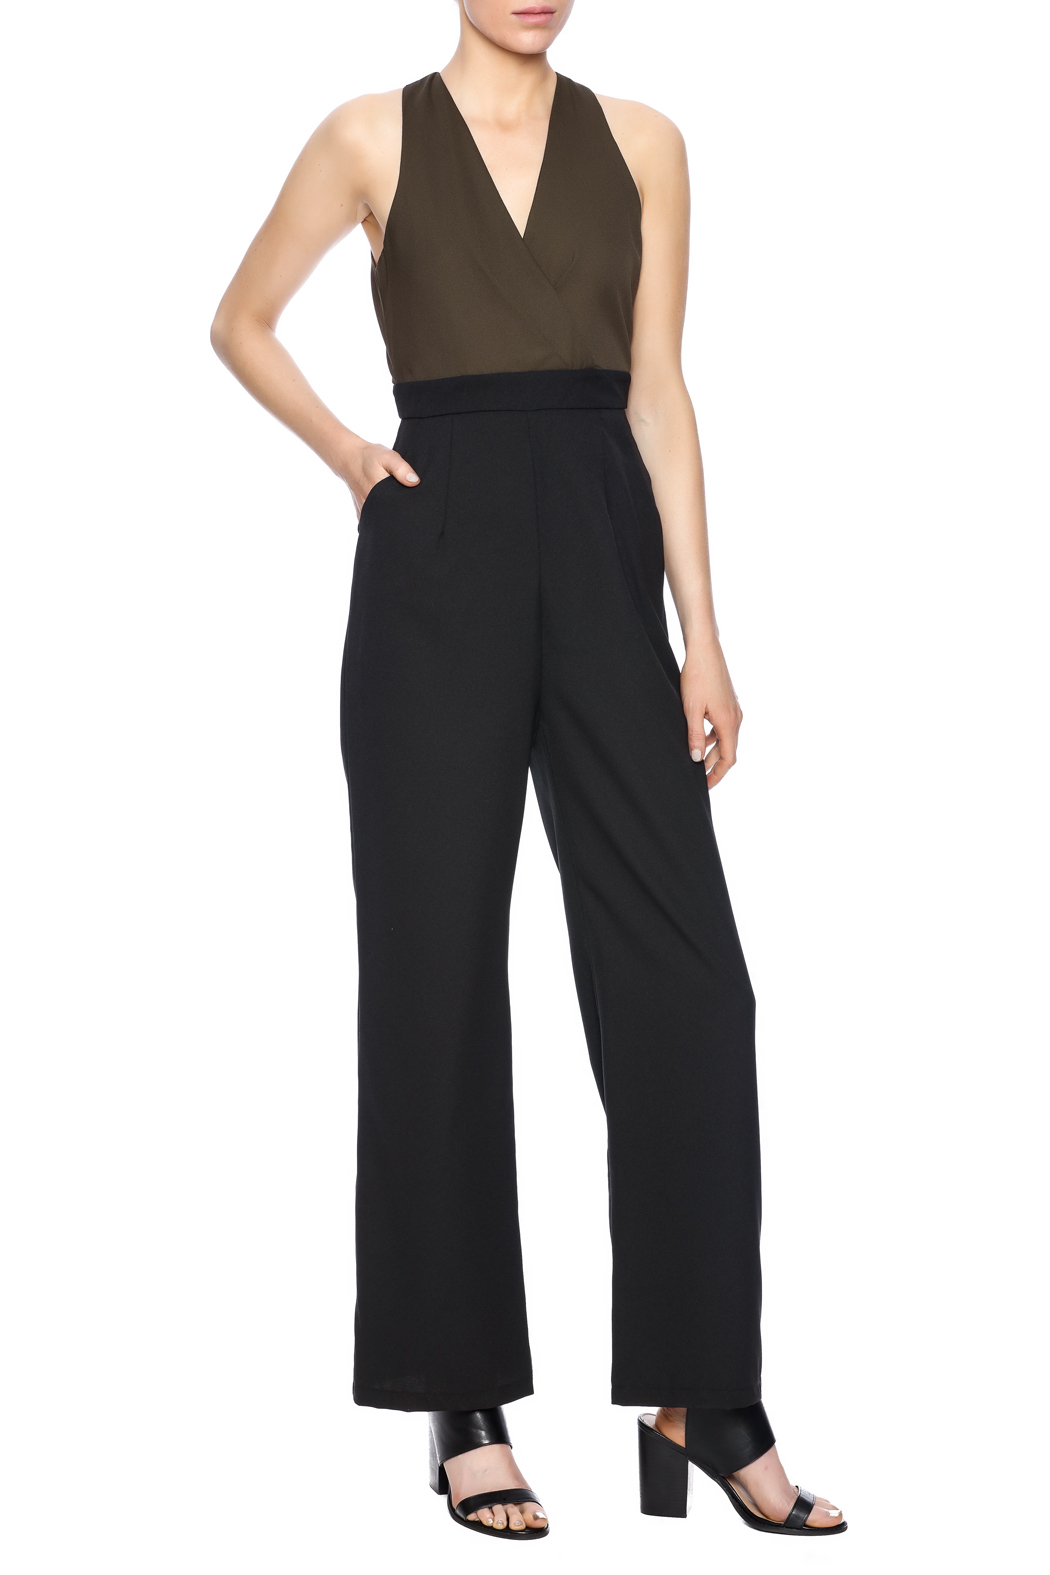 Eva & Lola Color Blocked Jumpsuit - Front Full Image